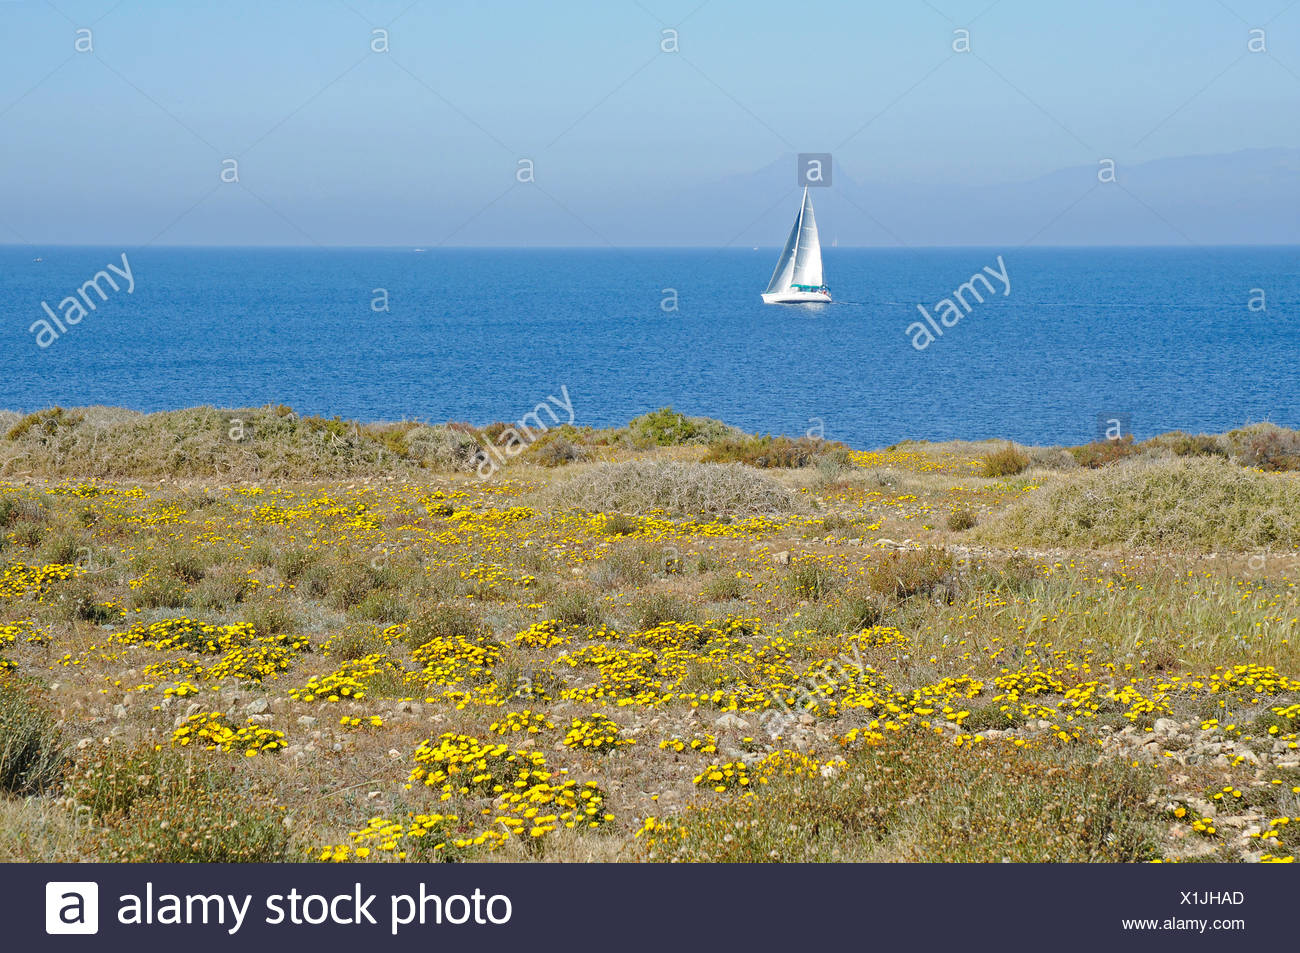 Single sail boat, coast, sea, Tabarca, Isla de Tabarca, Alicante, Costa Blanca, Spain, Europe - Stock Image